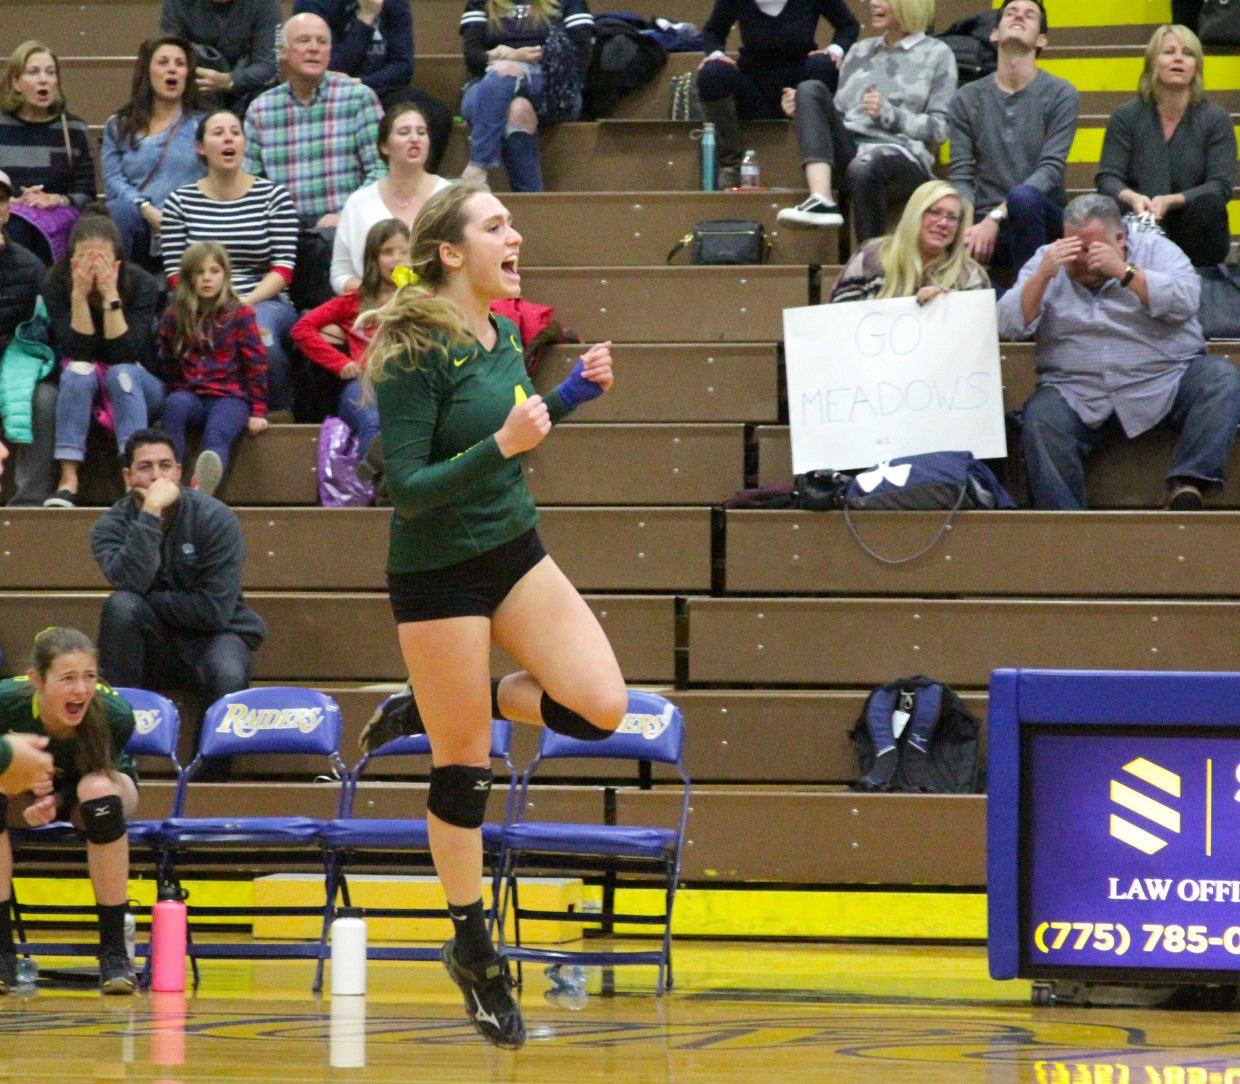 Incline's Chandler Cohn celebrates a point won.